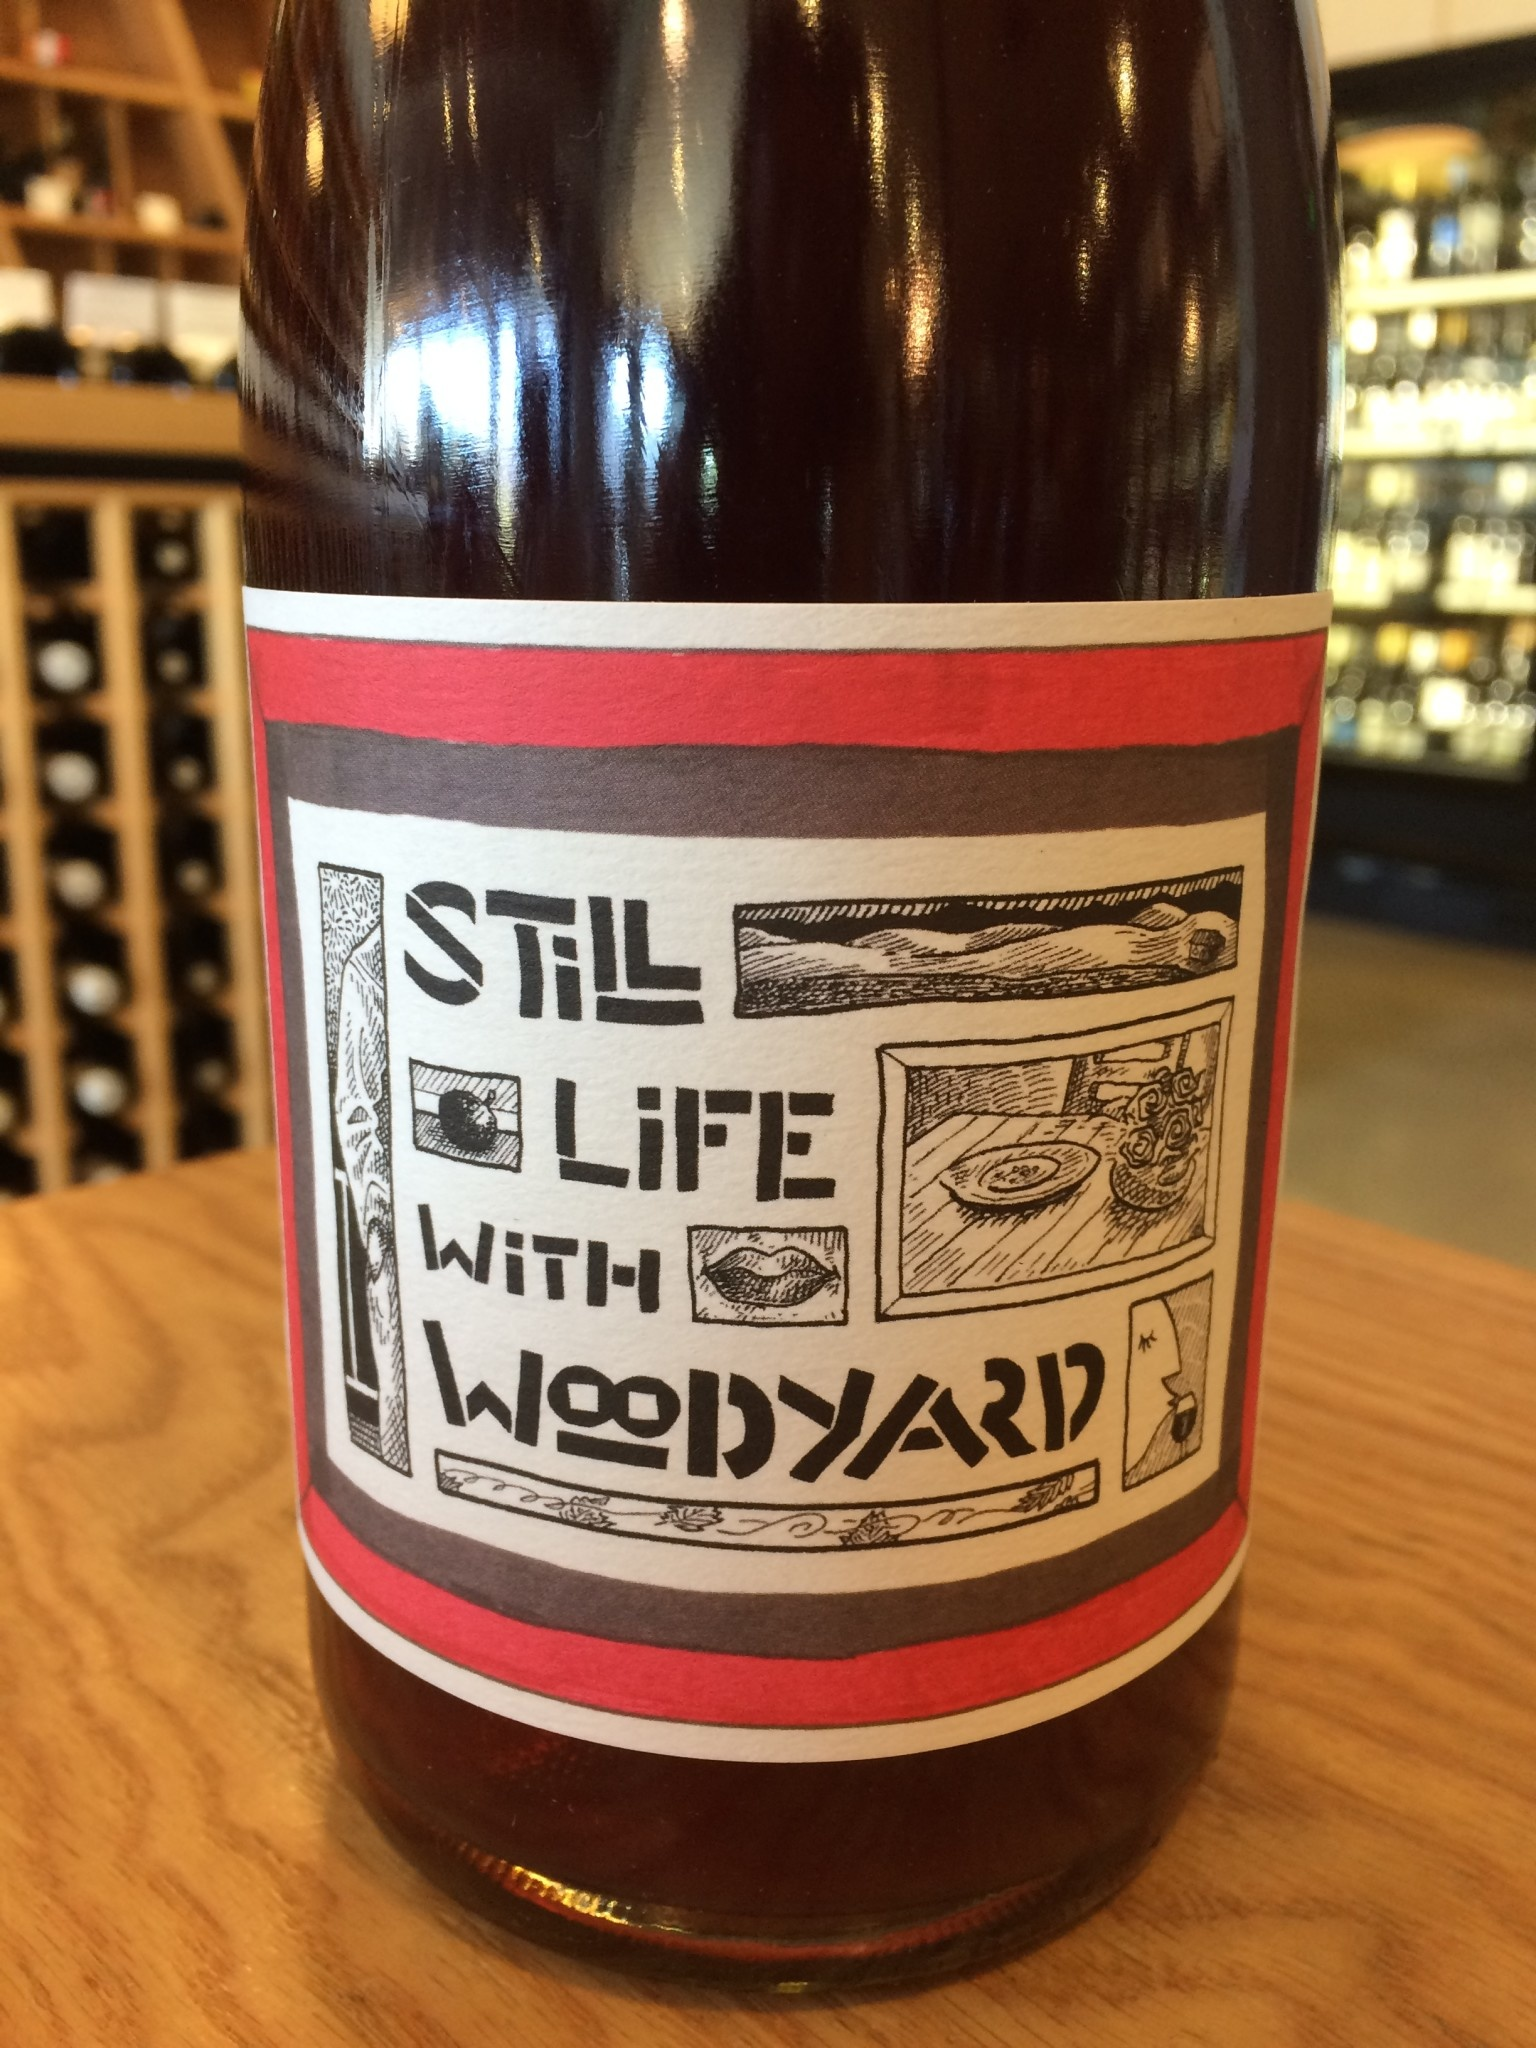 Stagiare 2018 Stagiare Still Life with Woodyard Zinfandel Pet Nat 750ml